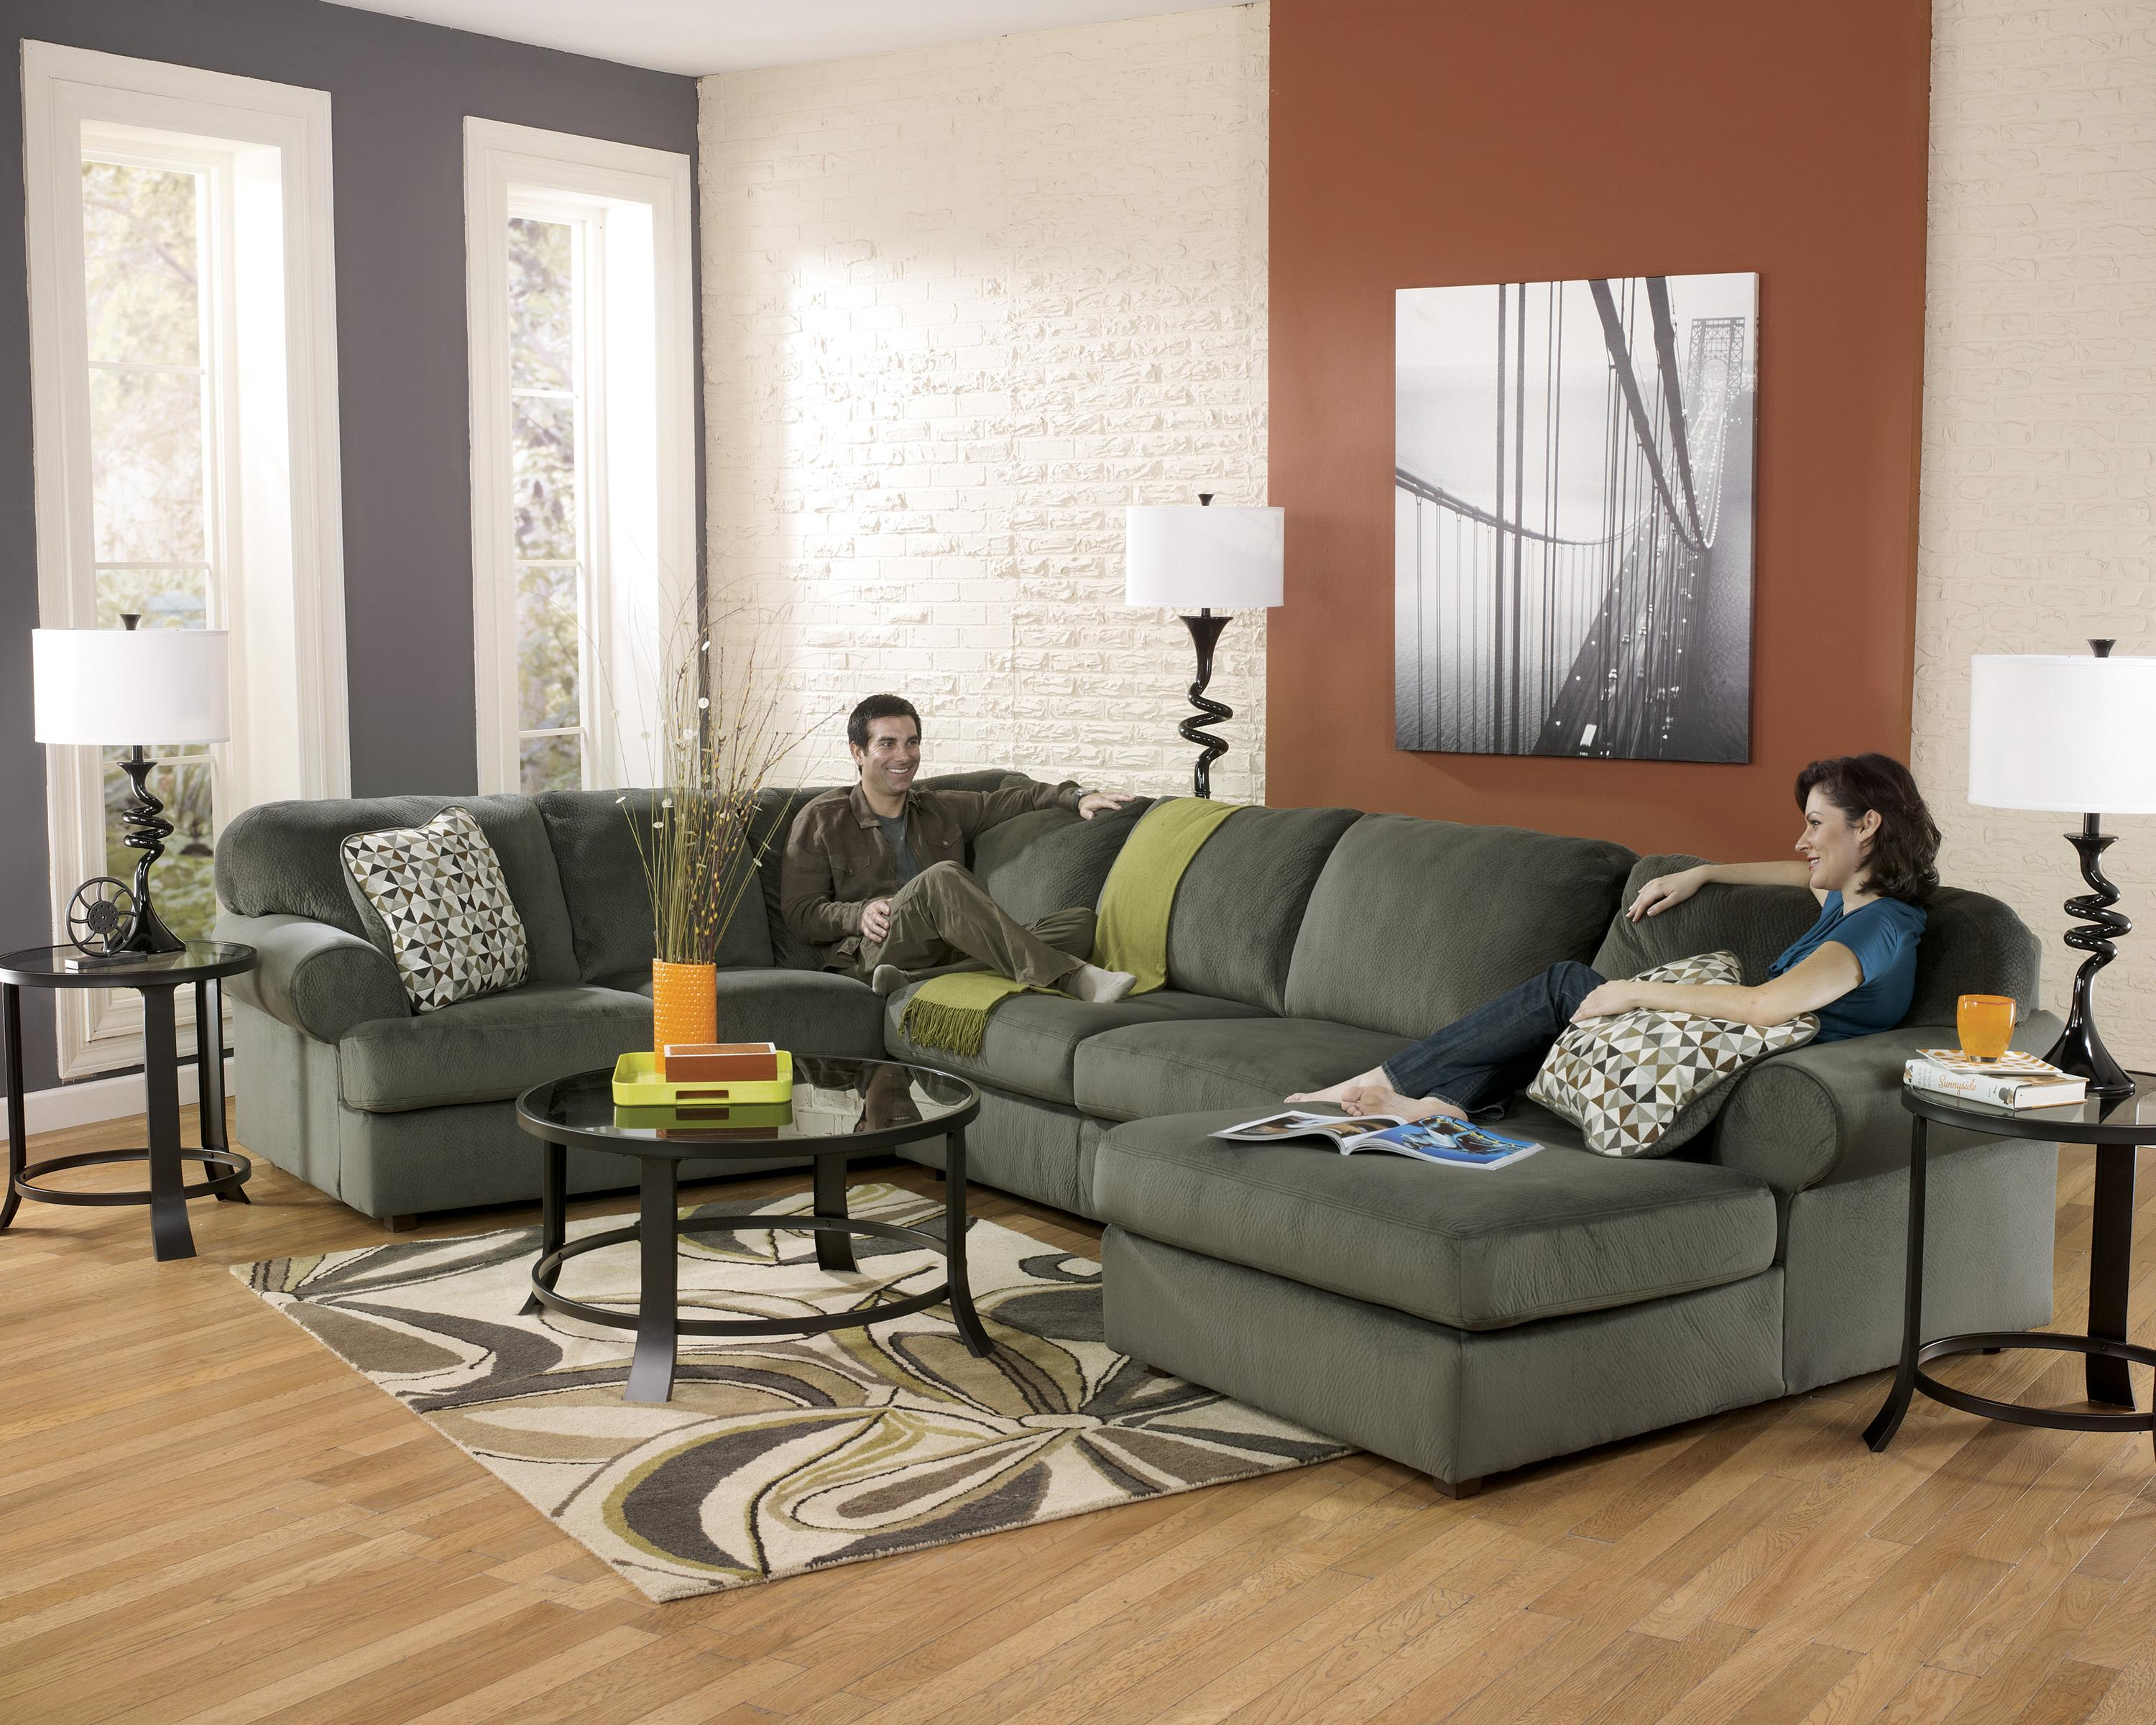 Signature Design By Ashley Jessa Place   Pewter Casual Sectional Sofa With  Right Chaise | Furniture Fair   North Carolina | Sofa Sectional  Jacksonville, ...